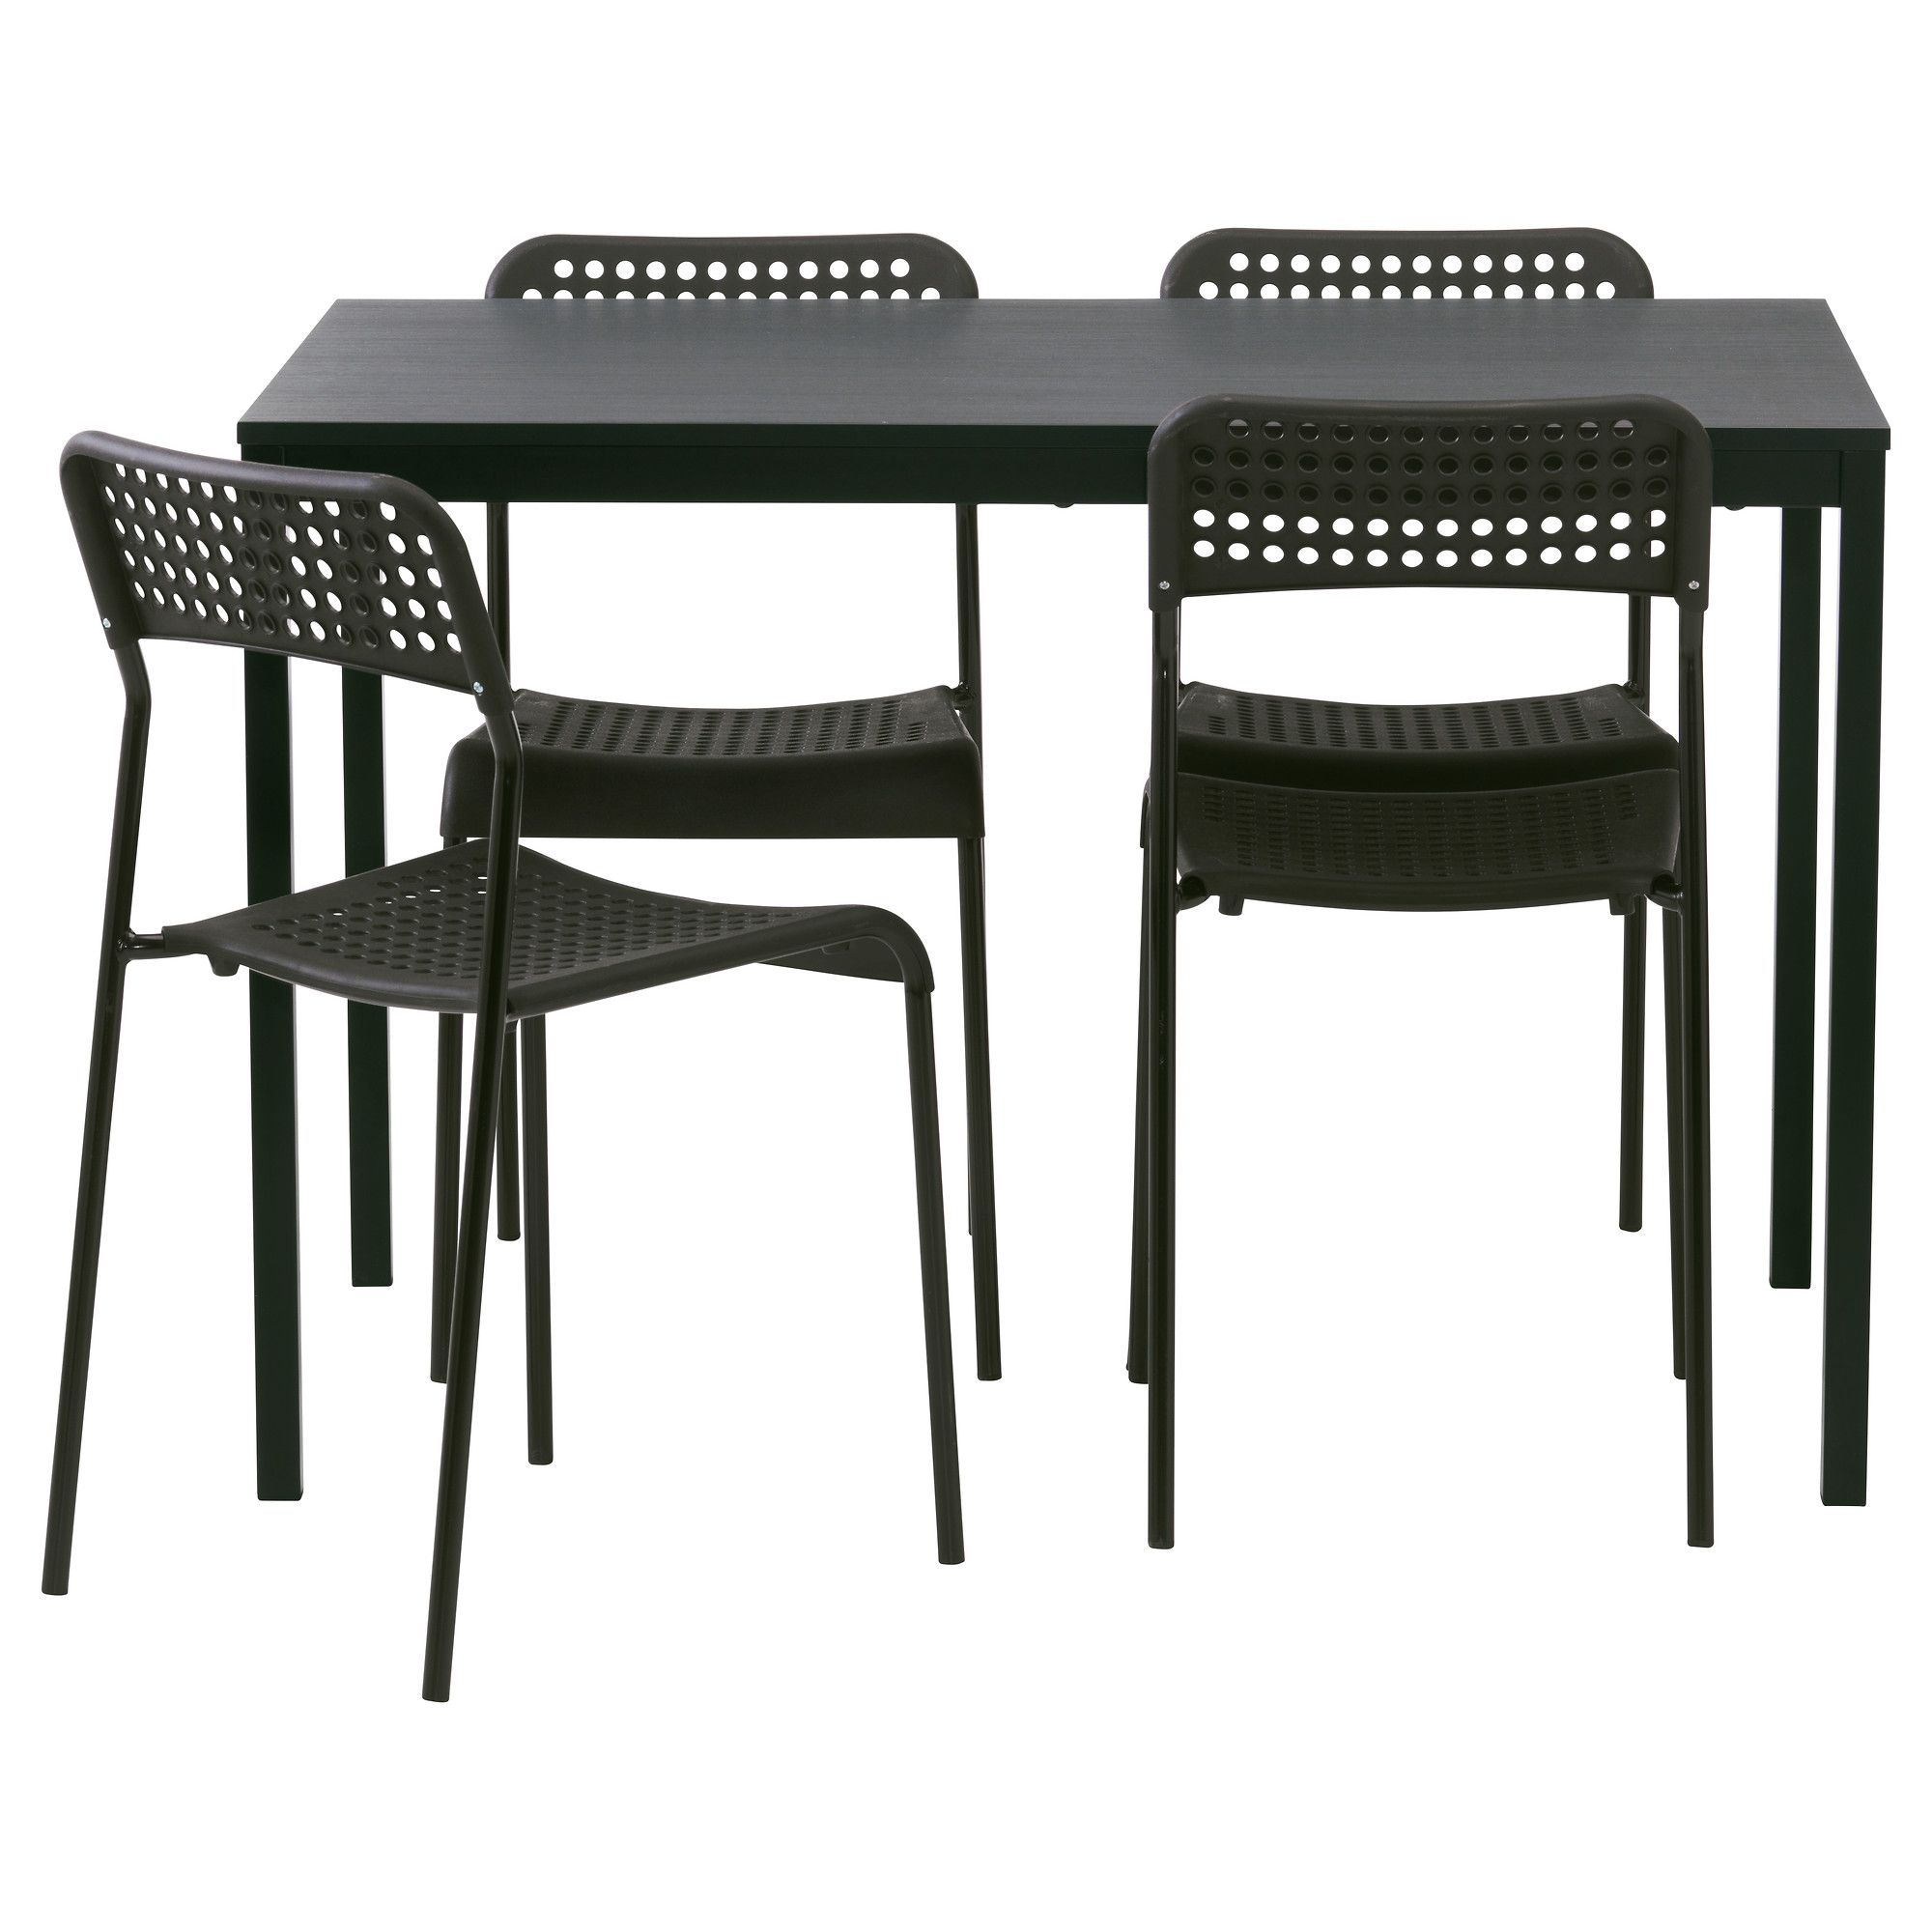 TÄRENDÖ / ADDE Table and 4 chairs, black | Casas